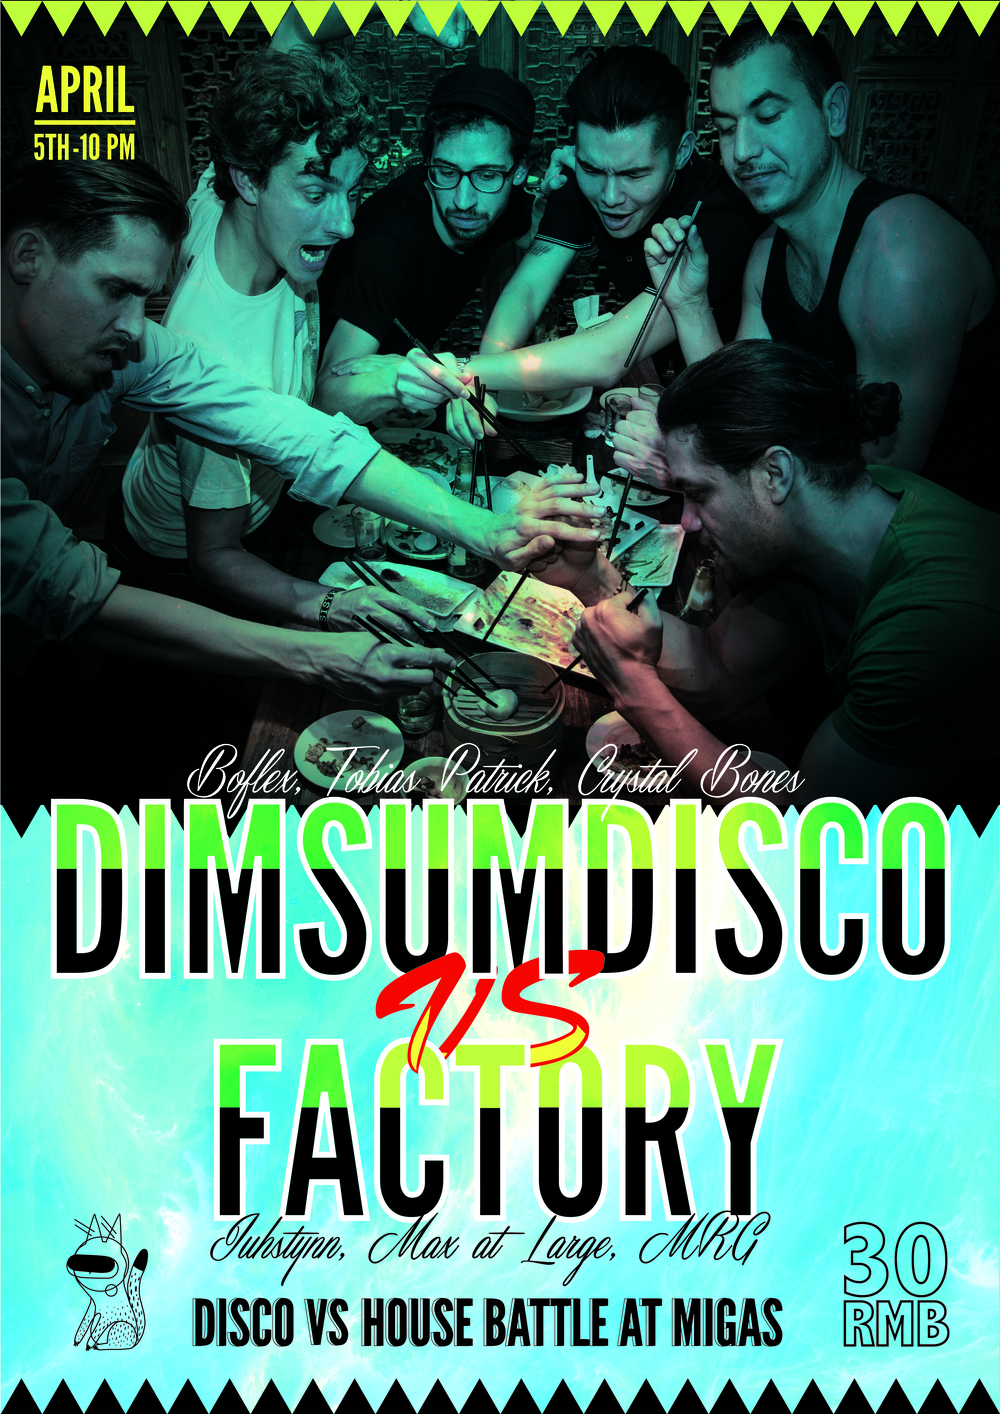 dimsumdisco_1st_april_final_blue_high.jpg